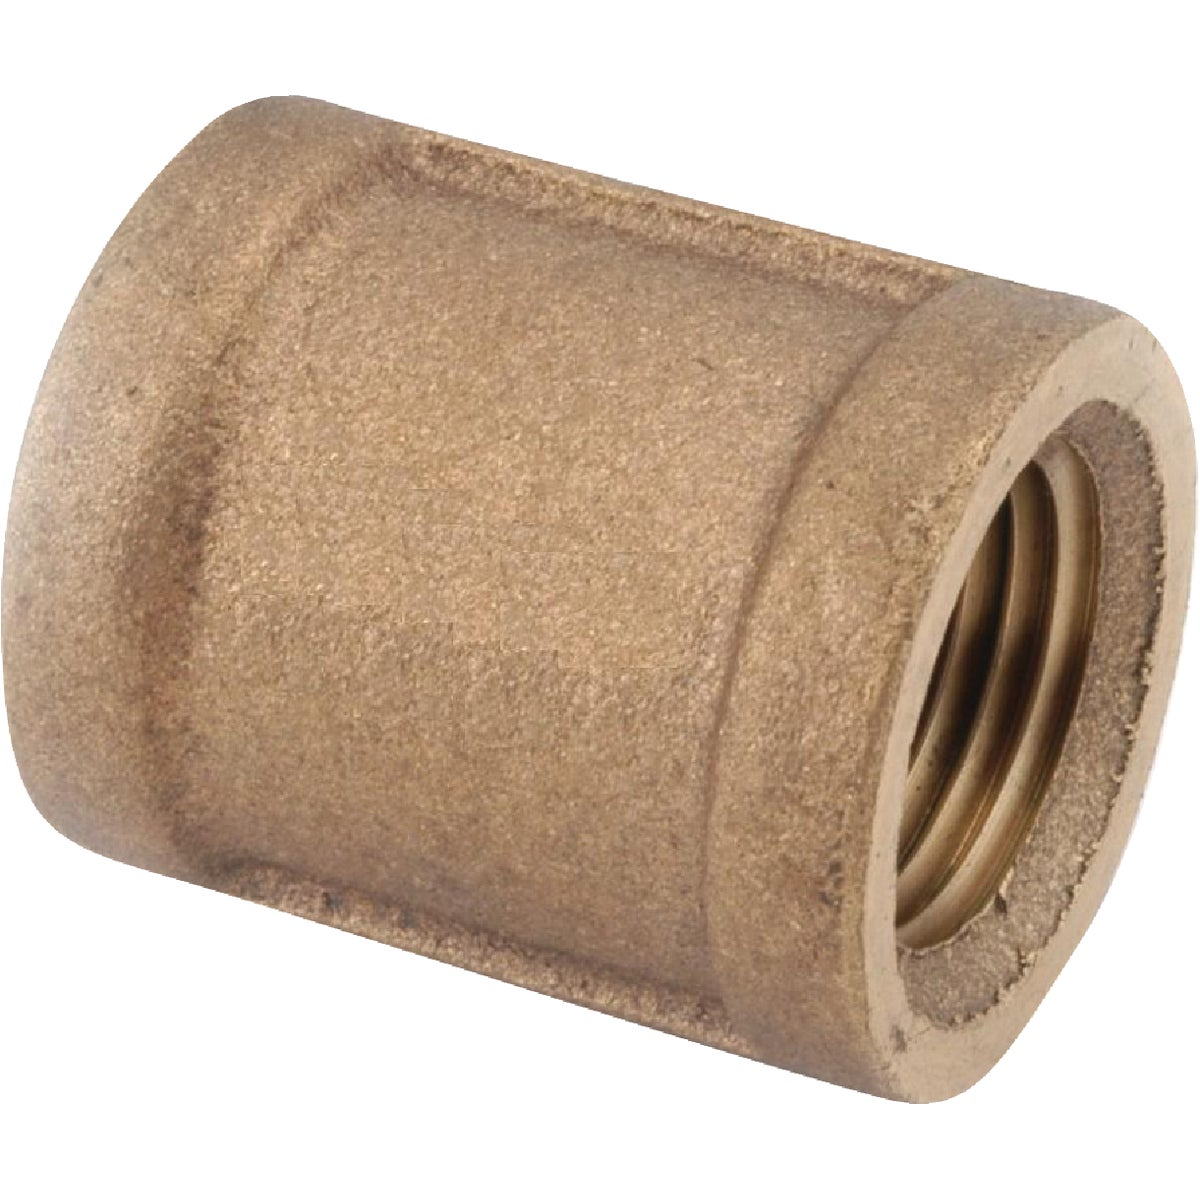 "1/4"" BRASS COUPLING - 738103-04 by Anderson Metals Corp"